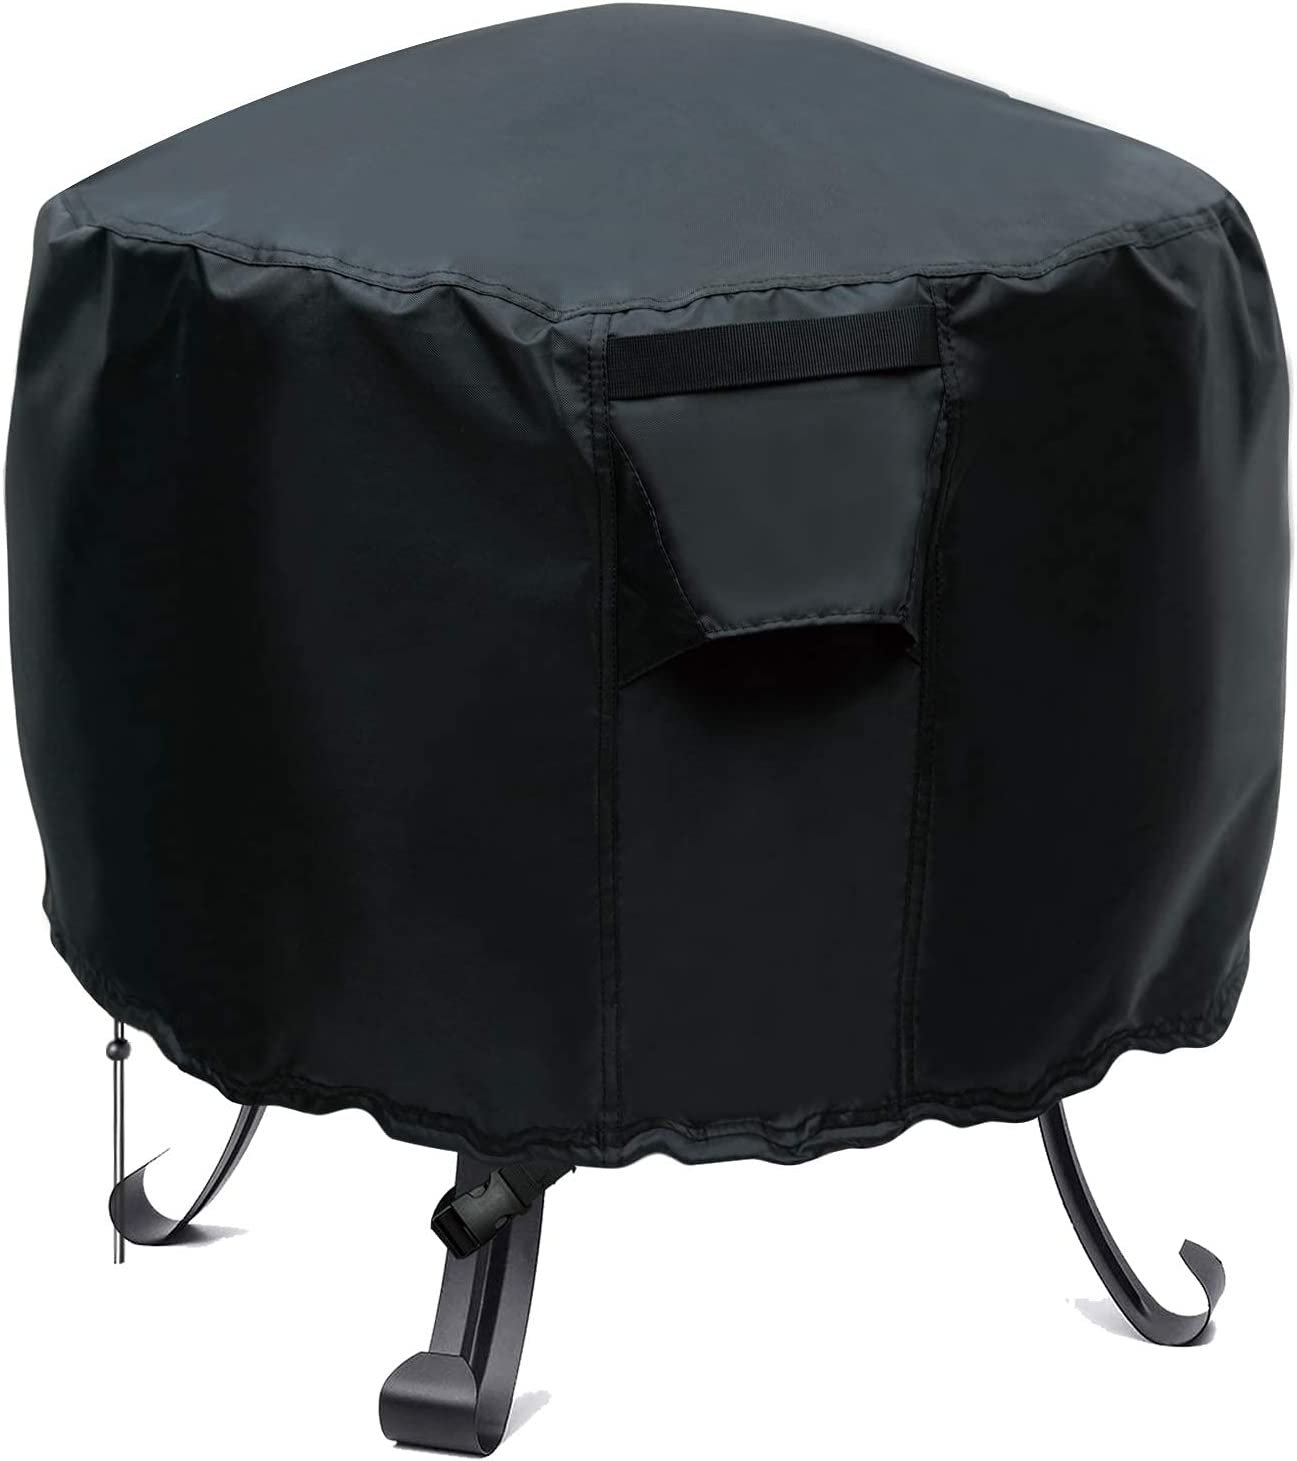 YUZ Fire Pit Cover Popular brand in the world for Round 22 Outdoor Memphis Mall Heavy Duty inch